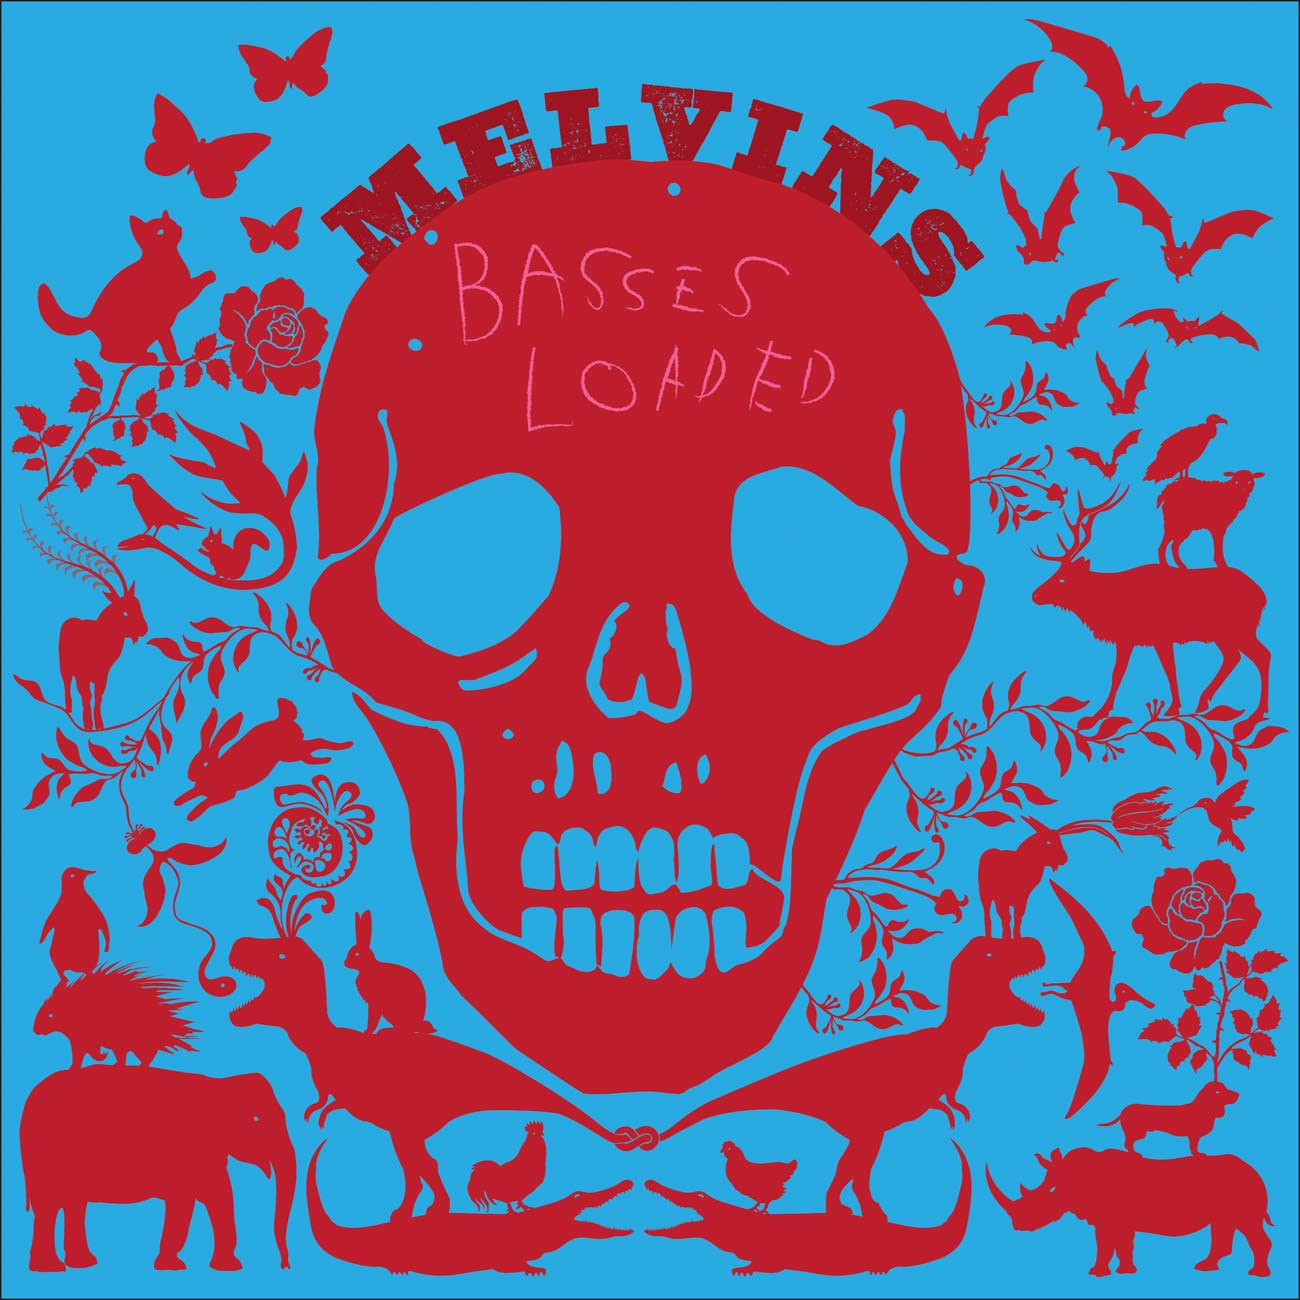 Melvins - Basses Loaded - Album Cover